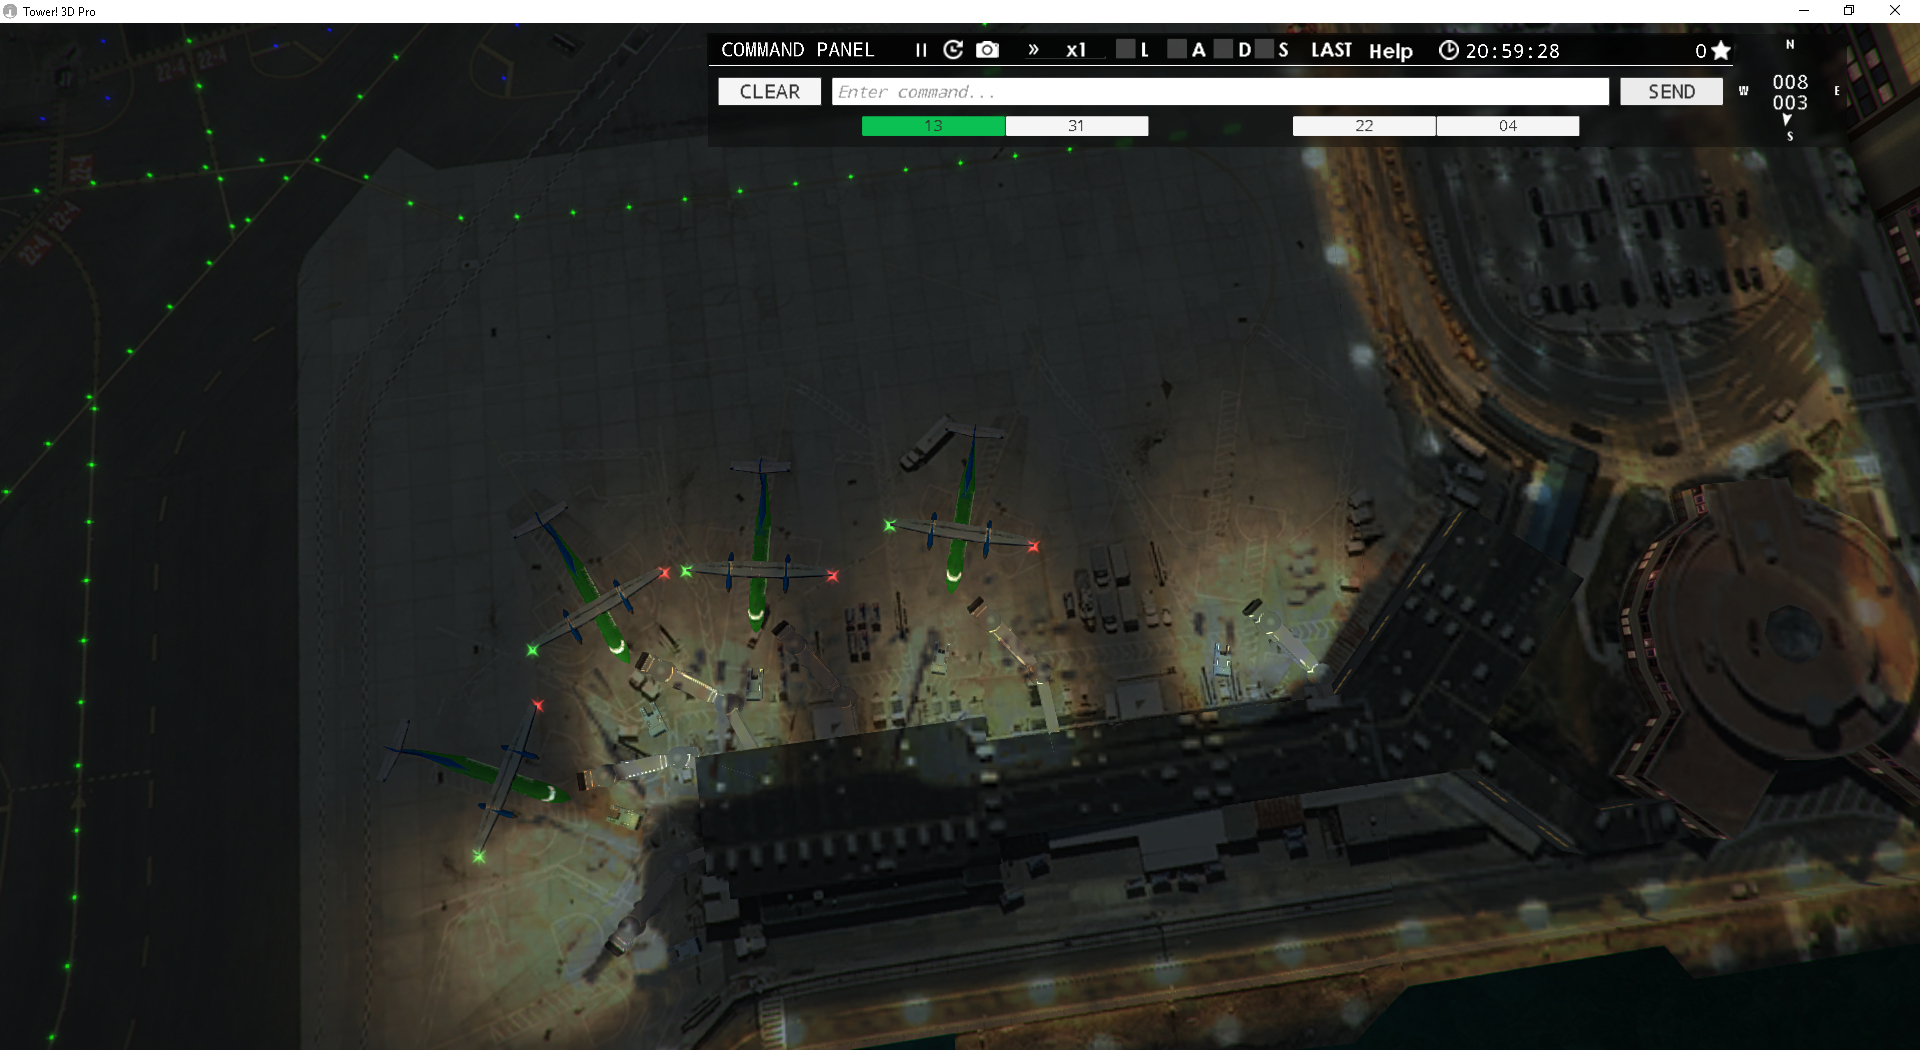 LaGuardia [KLGA] airport for Tower!3D Pro Steam Discovery